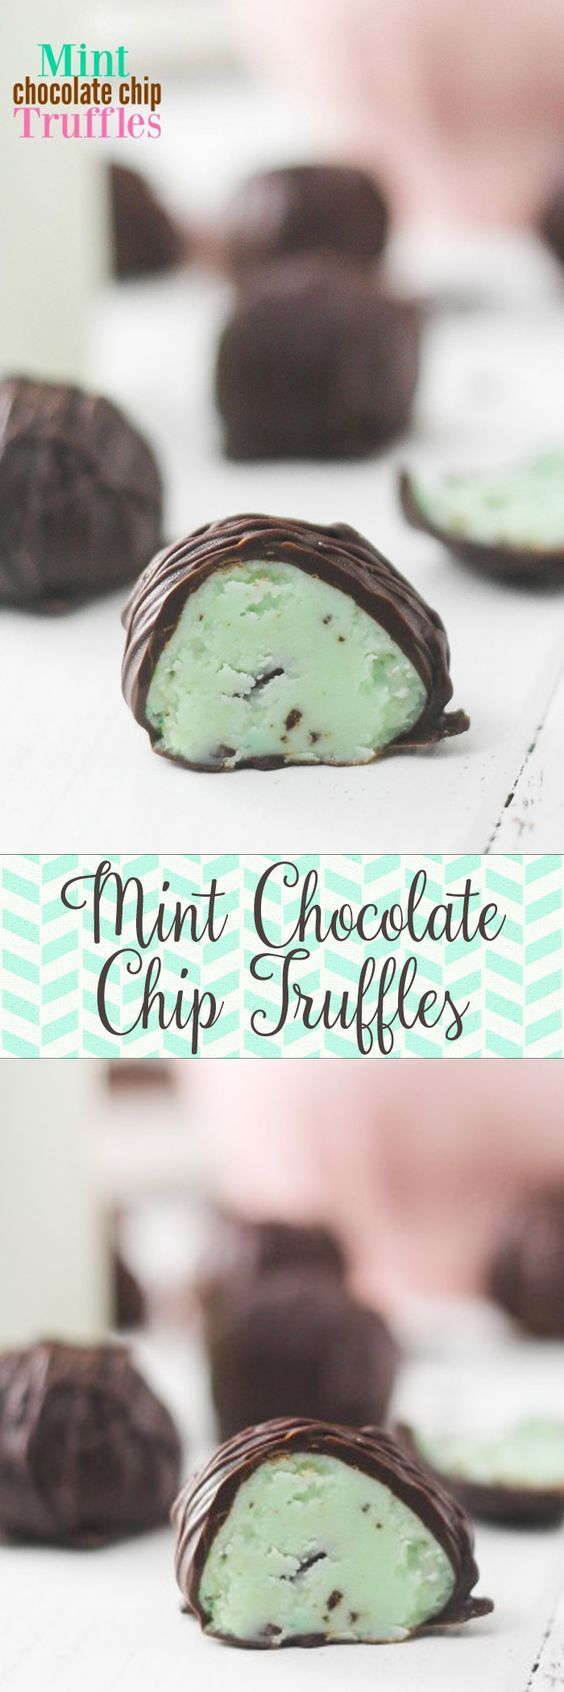 OBSESSED WITH THESE MINT CHOCOLATE CHIP TRUFFLES!! I love mint chocolate chip ANYTHING and these taste like ice cream!! But they aren't -- they don't melt!!